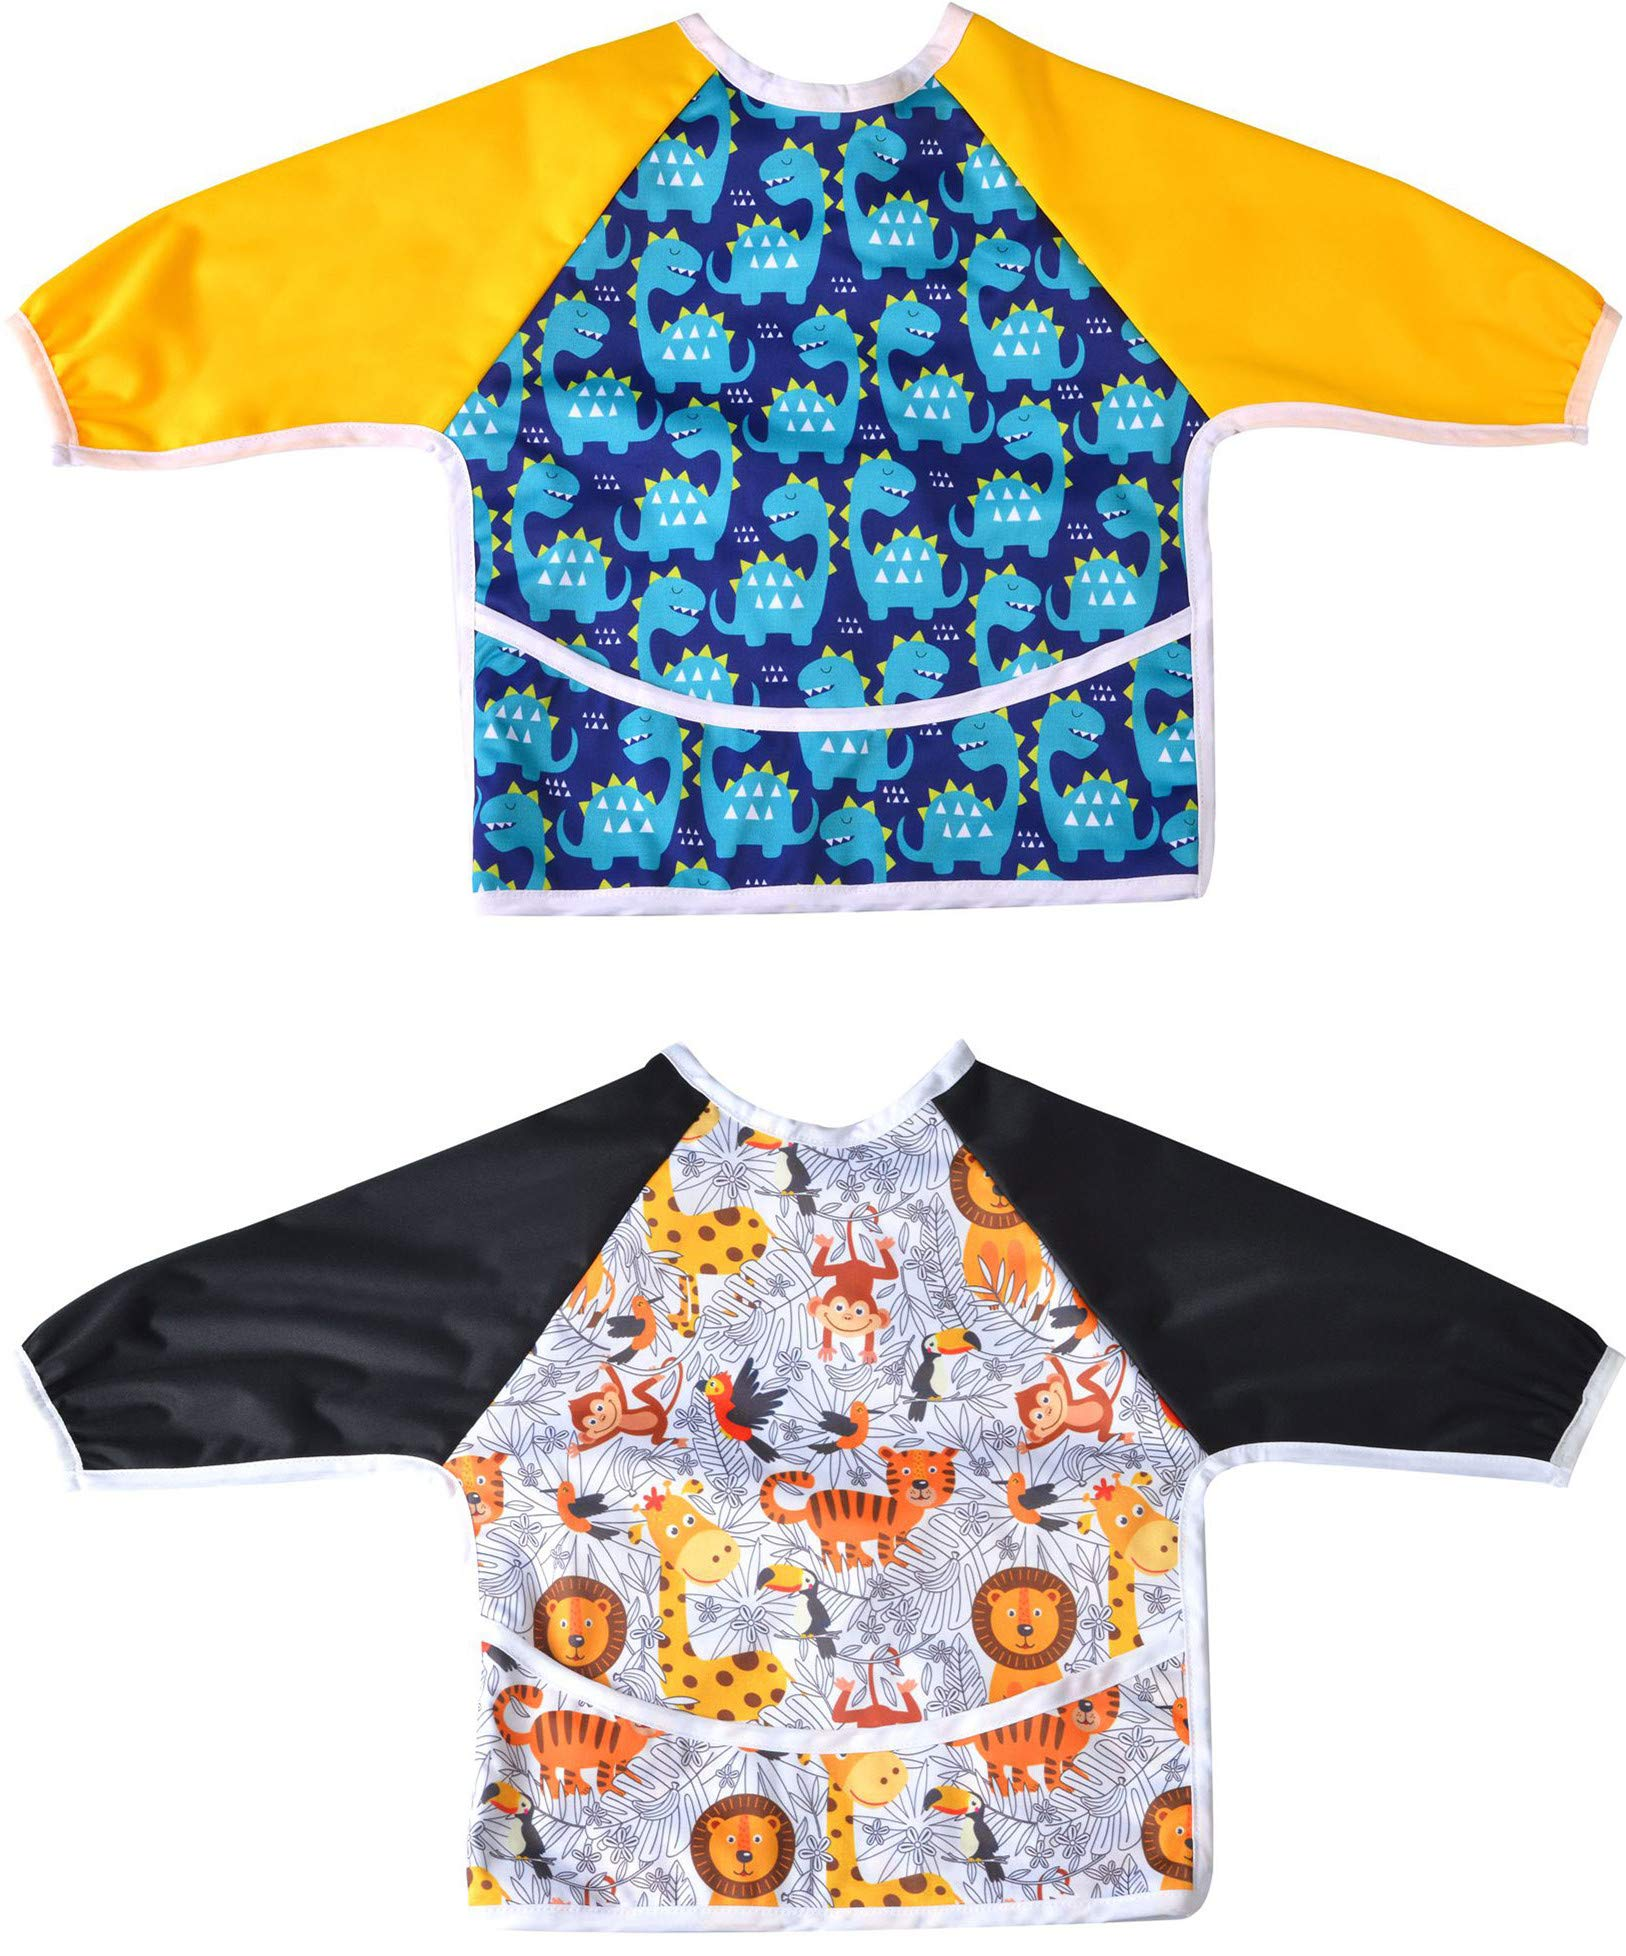 2 Pack Long Sleeved Bib Waterproof Bibs with pocket, 6 to 24 months baby girl and boy Bib (Dinosaur & Animal)